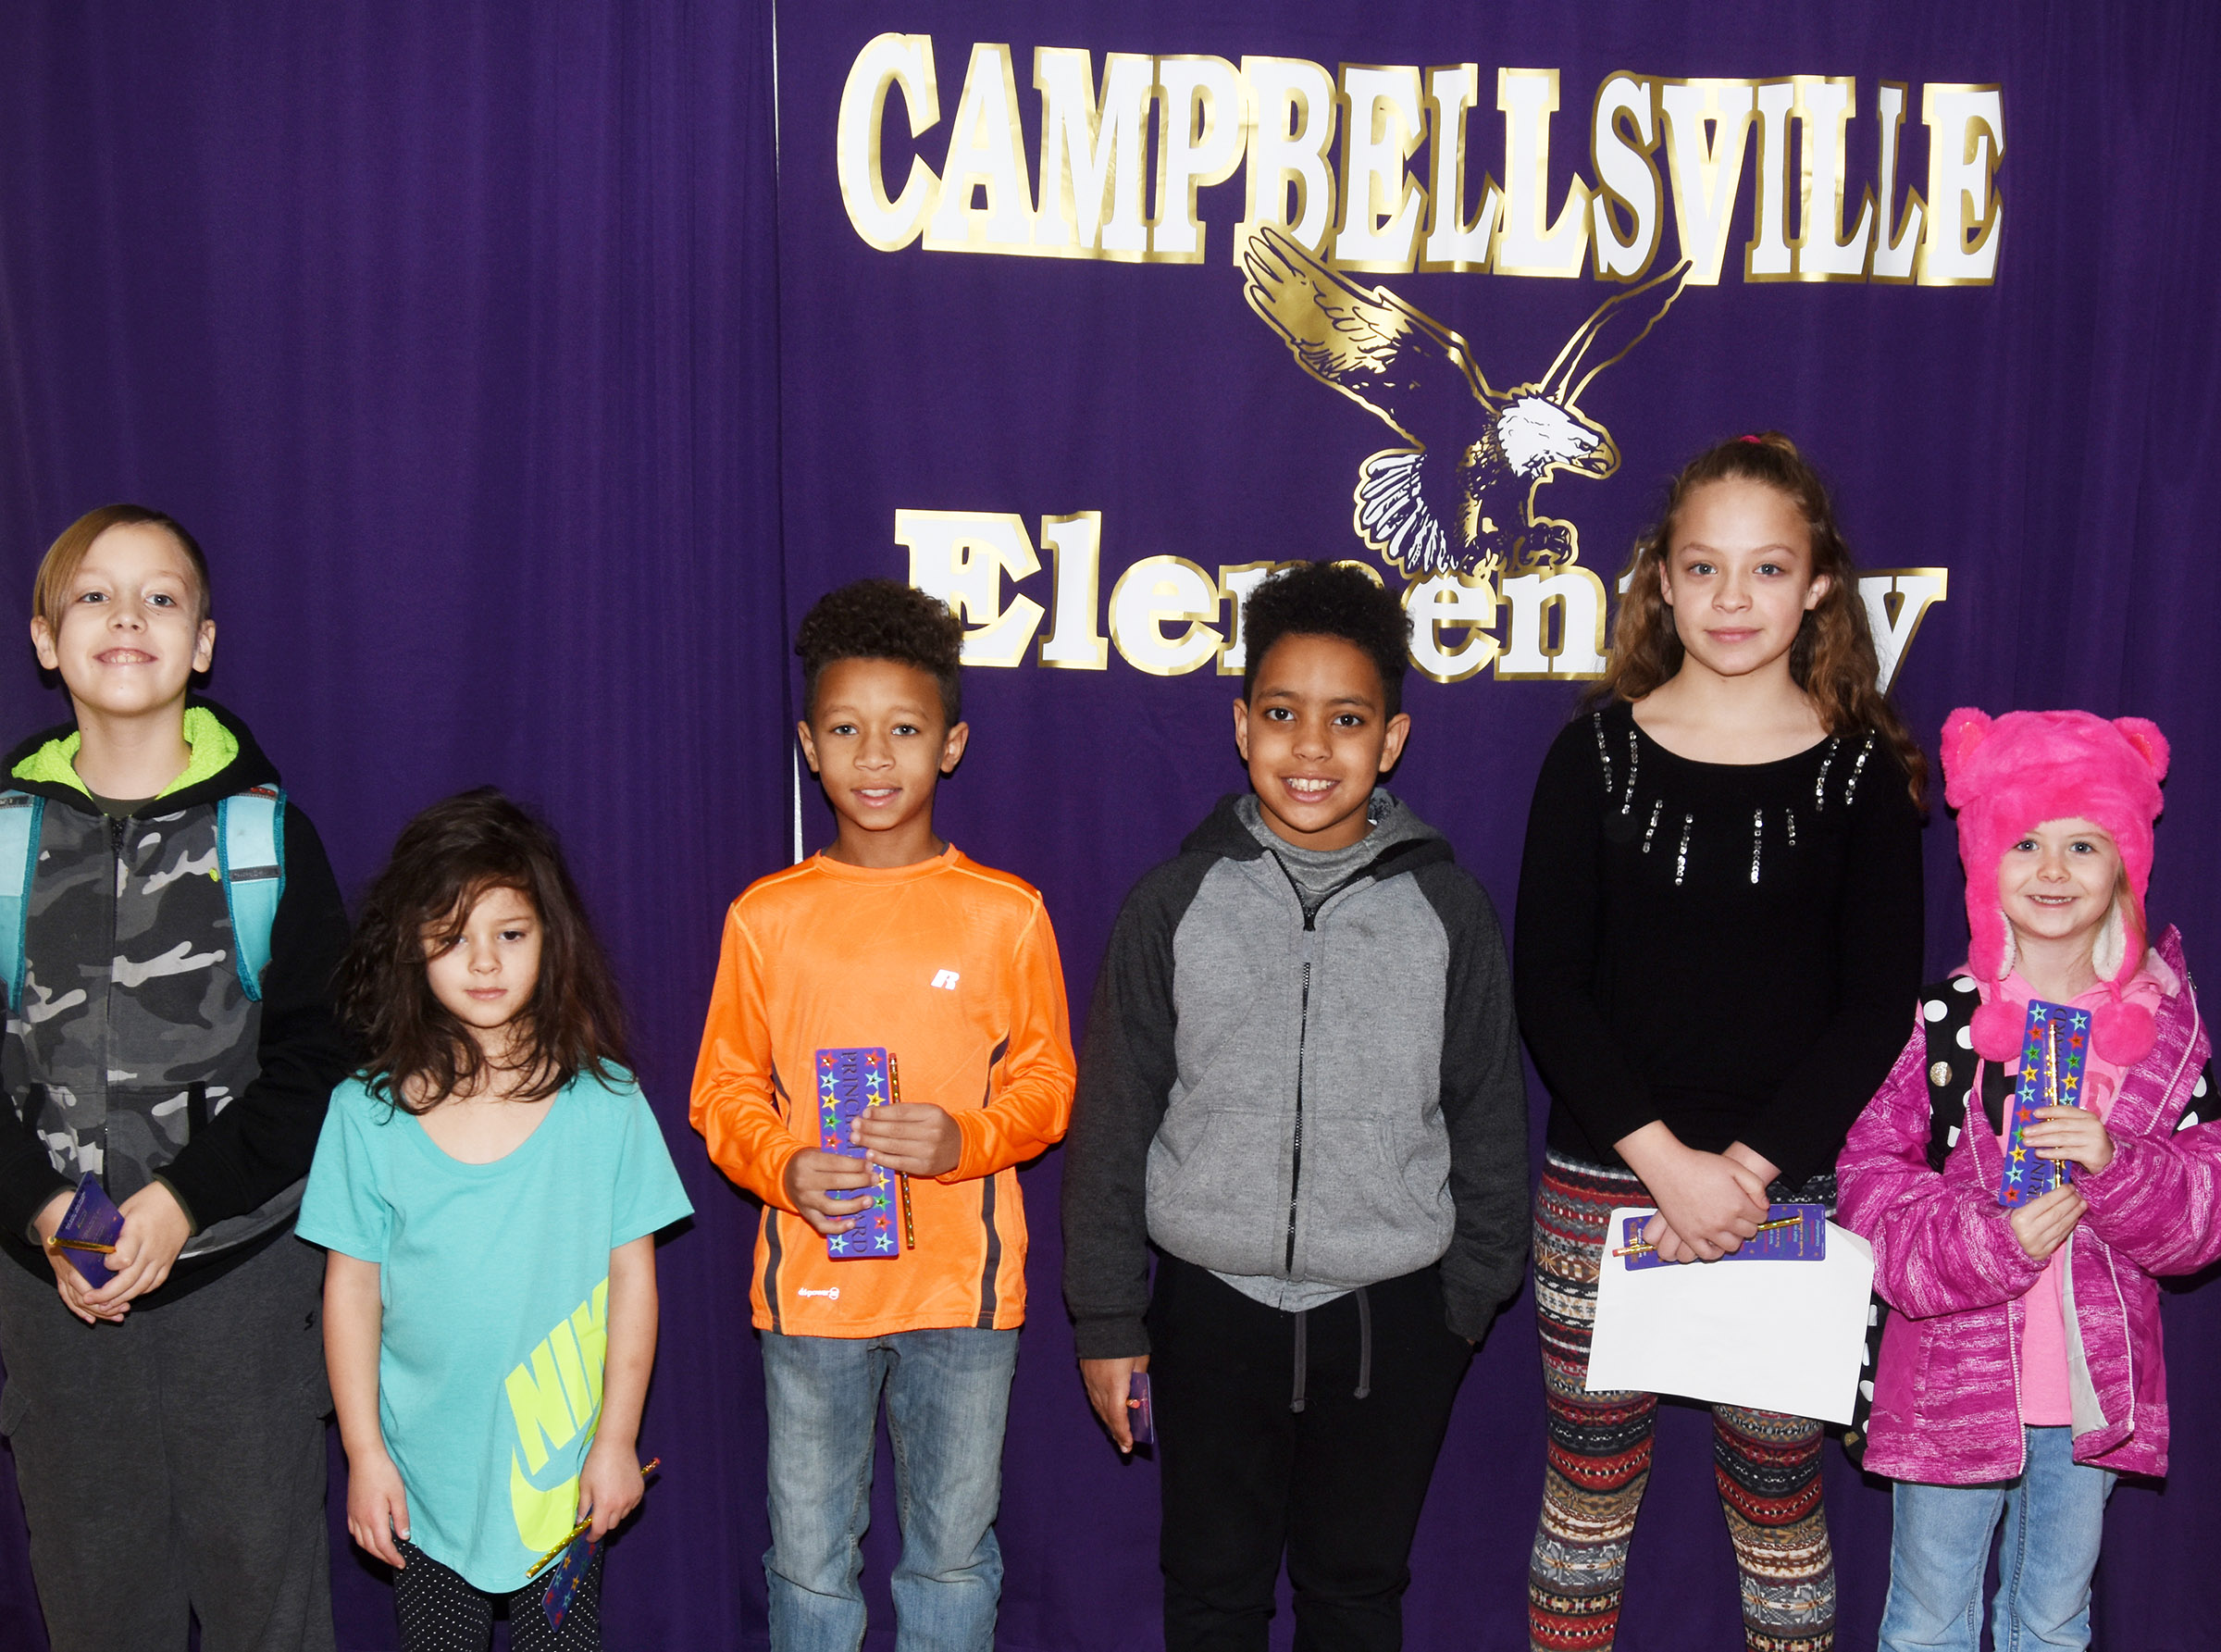 From left are fourth-grader Izak Burress, kindergartener Norah Adkins, third-grader Rajon Taylor, second-grader Romeo Goins, fifth-grader Deanna Reardon and first-grader Jewell Brewster.